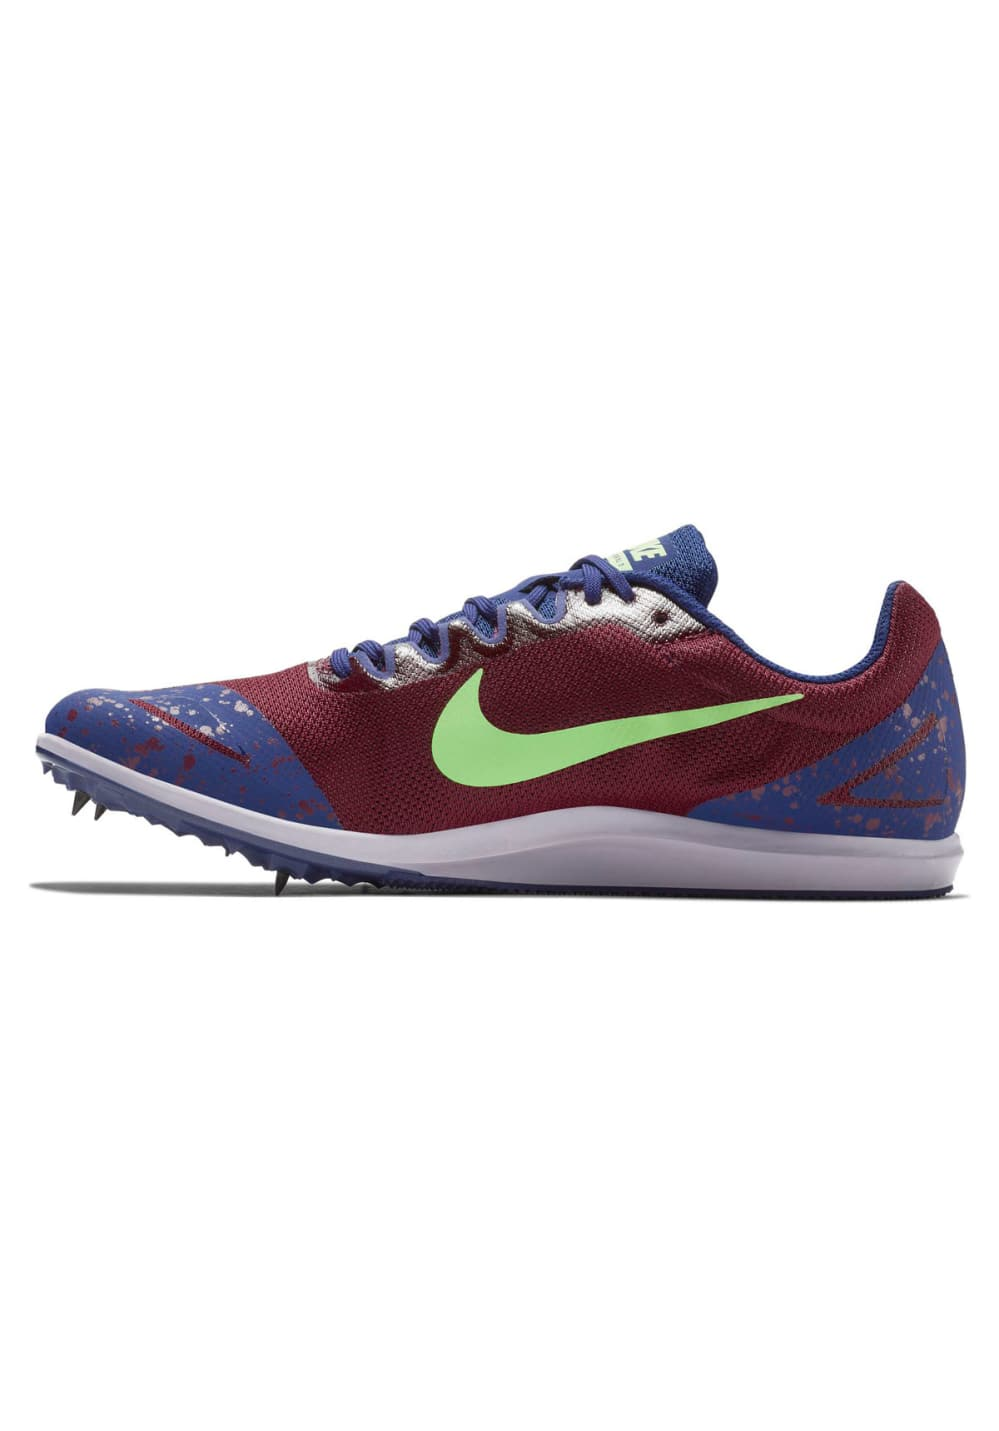 sports shoes 8530f b2e31 Nike Zoom Rival D 10 - Spikes - Red